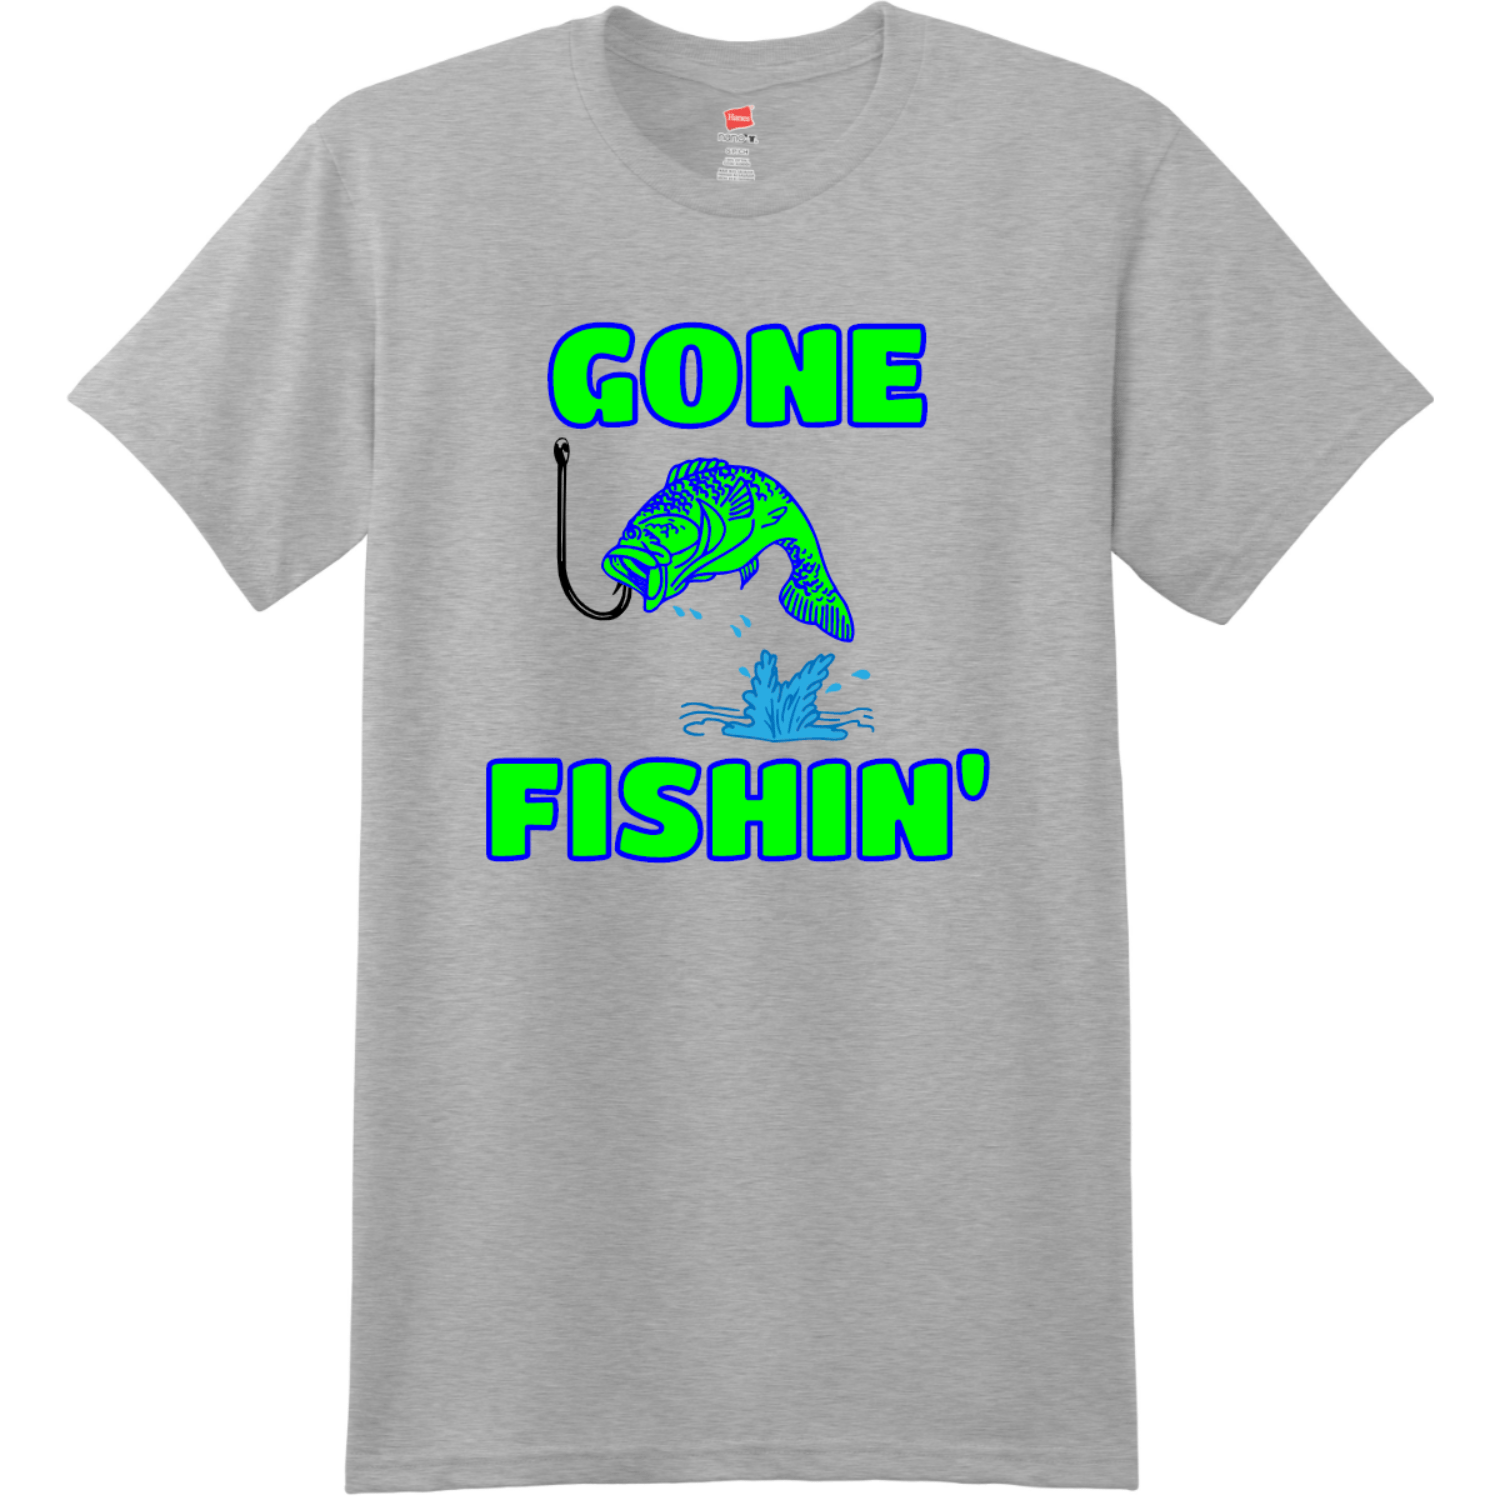 Gone Fishin T Shirt Light Steel Hanes Nano 4980 Ringspun Cotton T Shirt